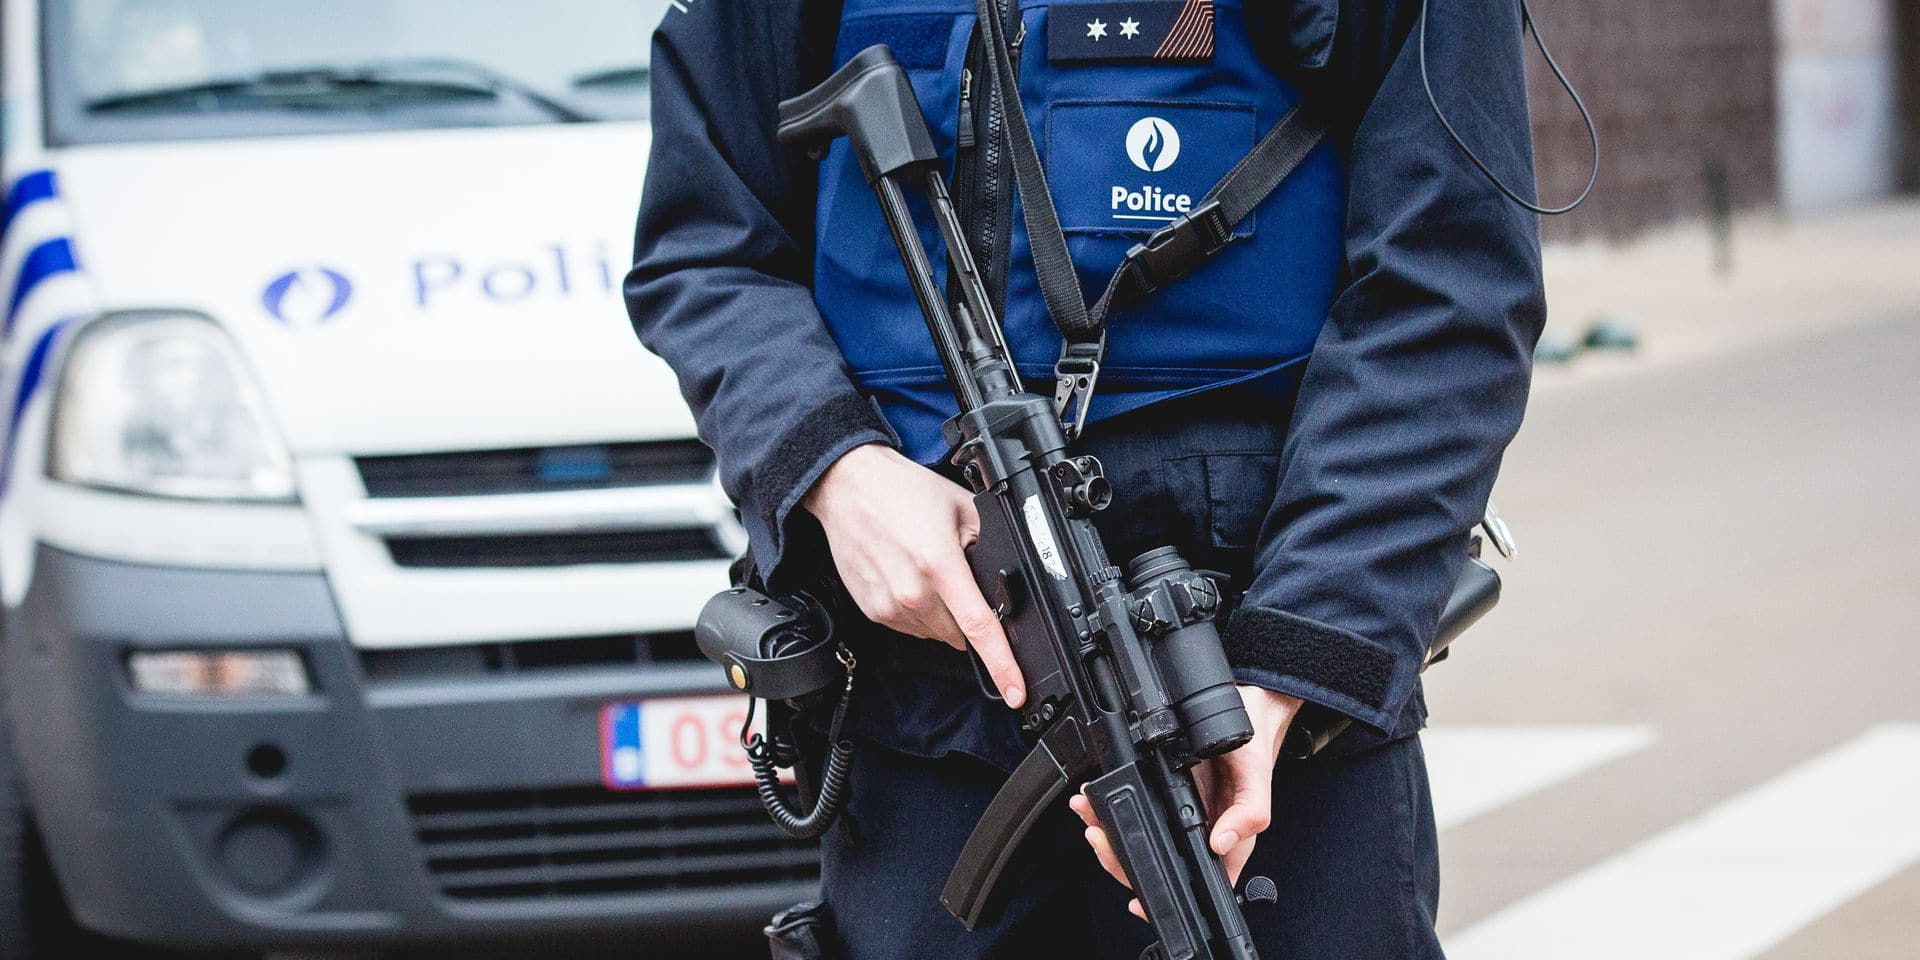 Armed policemen pictured near the scene of a police action in the Rue des Quatre-Vents - Vierwindenstraat street in Sint-Jans-Molenbeek - Molenbeek-Saint-Jean, Brussels, Friday 18 March 2016. According to the first information Salah Abdeslam was arrested during the searches, he is considered one of the main suspects in the November 13th Paris terrorist attacks and Tuesday's shooting in Vorst. BELGA PHOTO AURORE BELOT